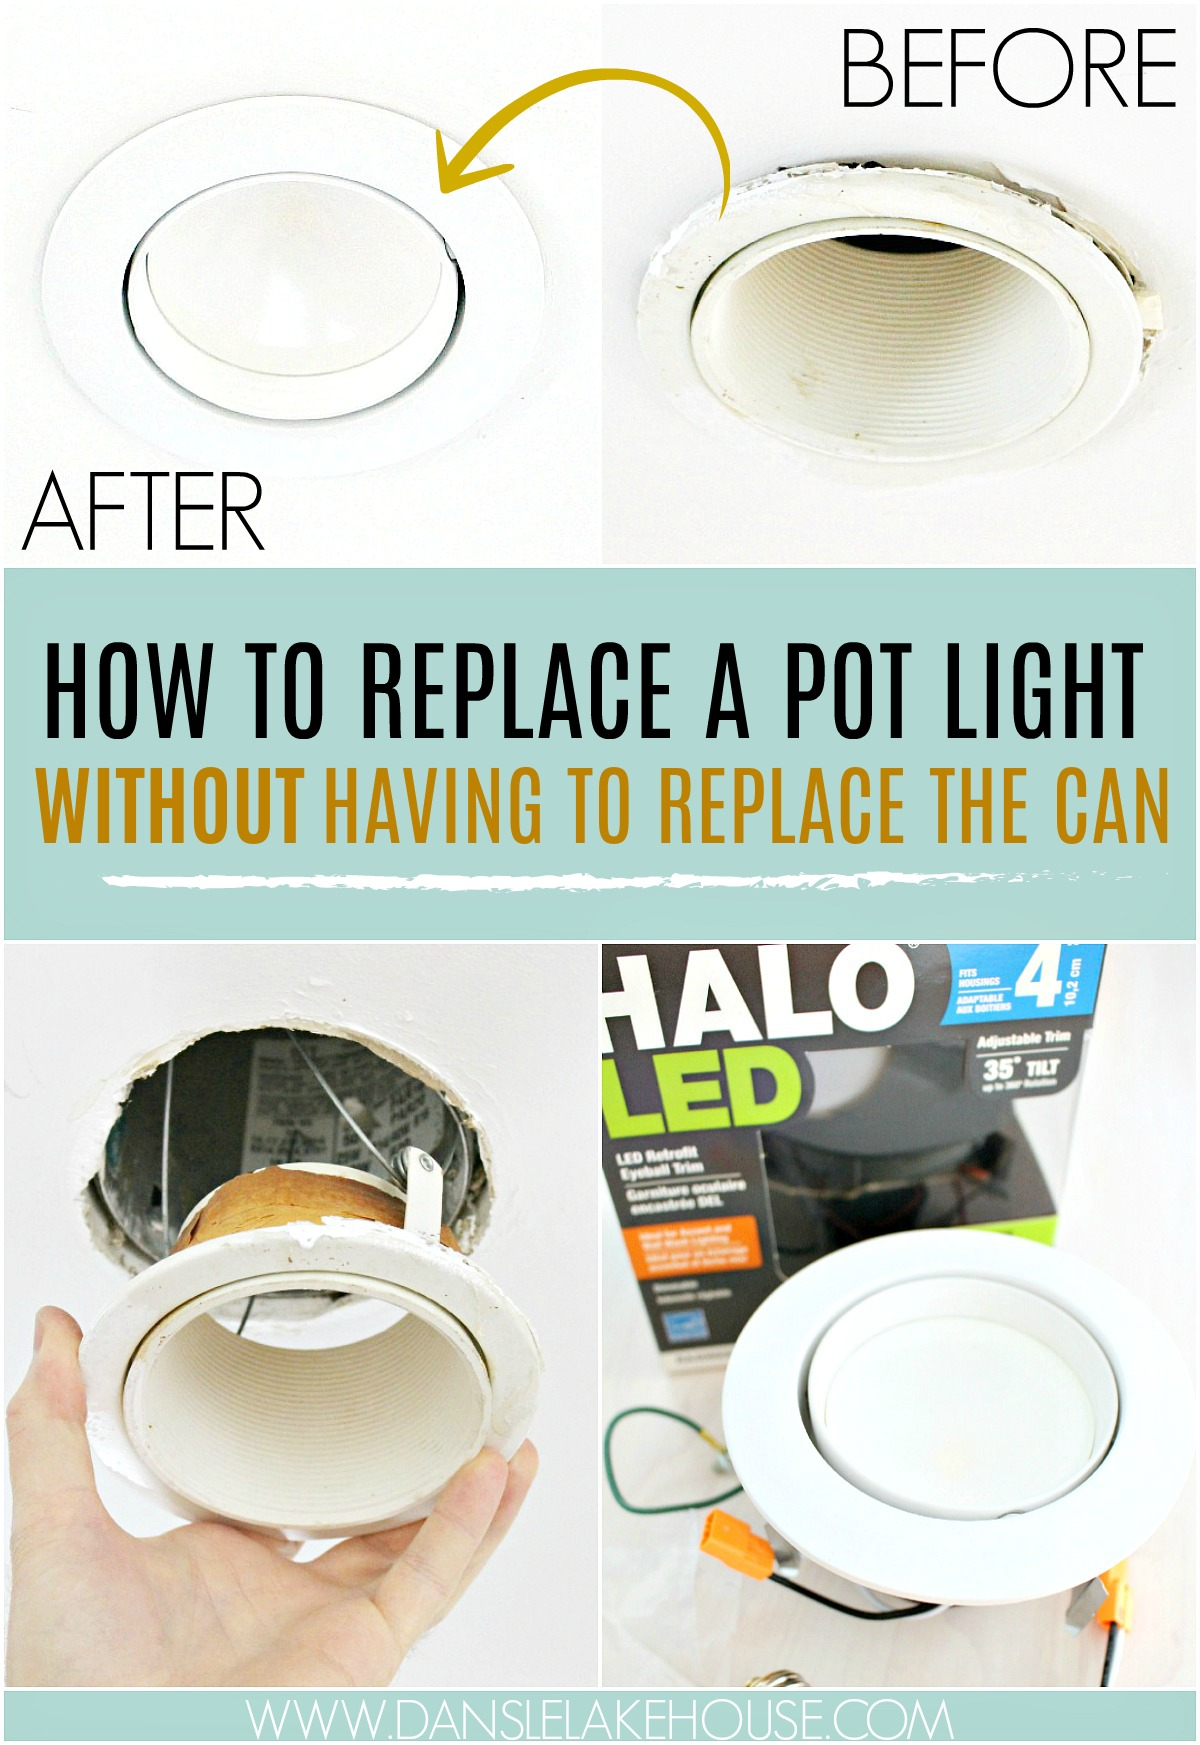 How to EASILY Replace a Pot Light Without Having to Replace the Whole Can! AWESOME Post with Step-by-Step Photos and Instructions and Links to Product Used. Budget Friendly Renovating Idea. #budgethome #potlights